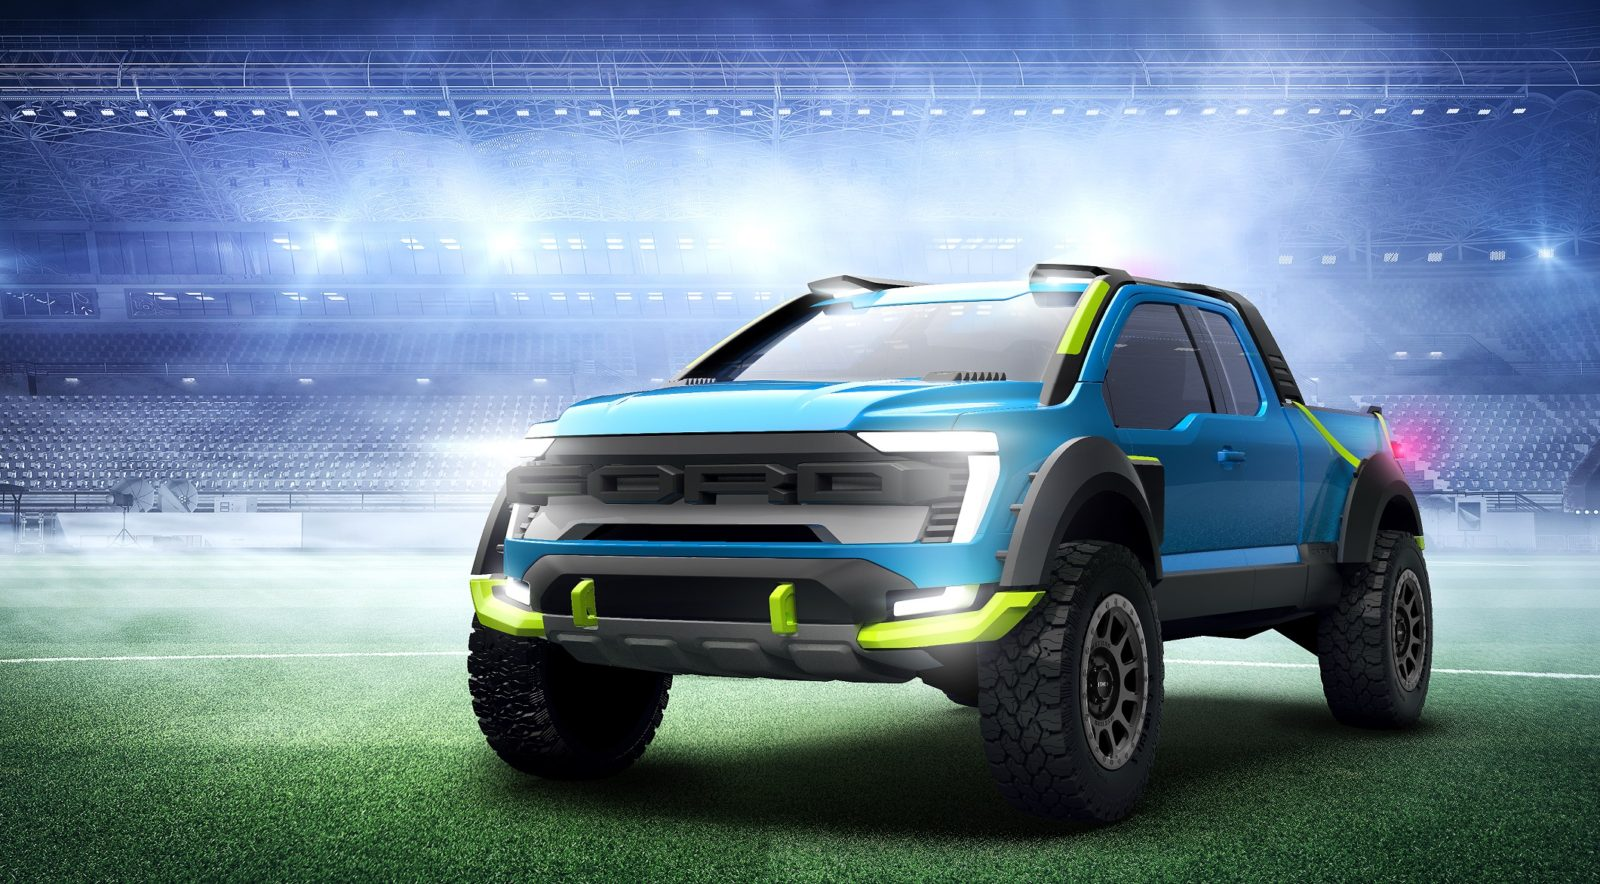 rocket-league-ford-f-150-lands-in-chicago,-go-see-it-at-cas